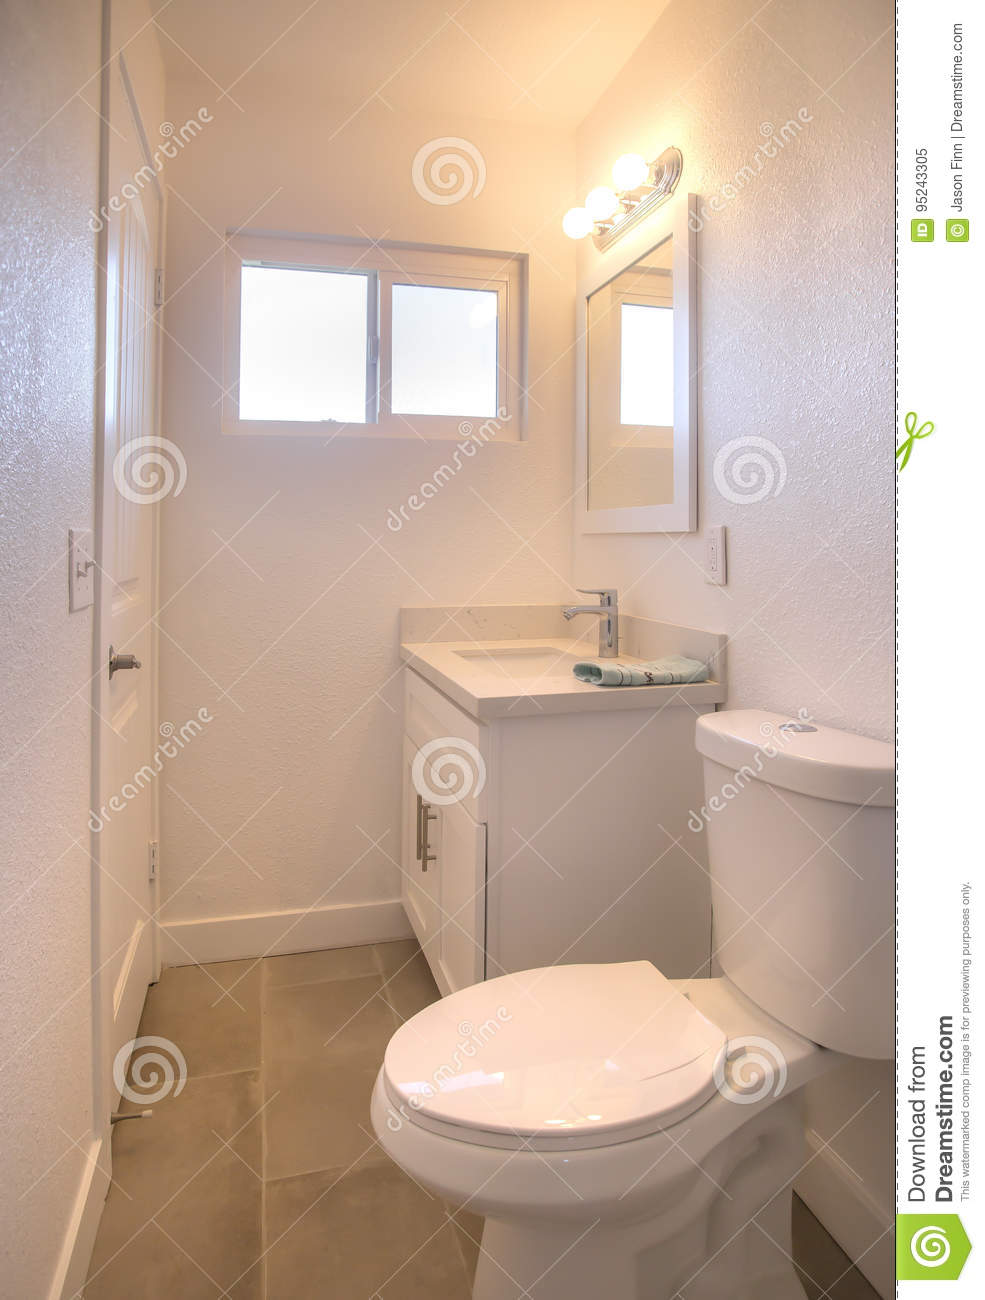 Warm Bathroom With Small White Window Stock Image - Image ... on Bathroom Model Design  id=41757